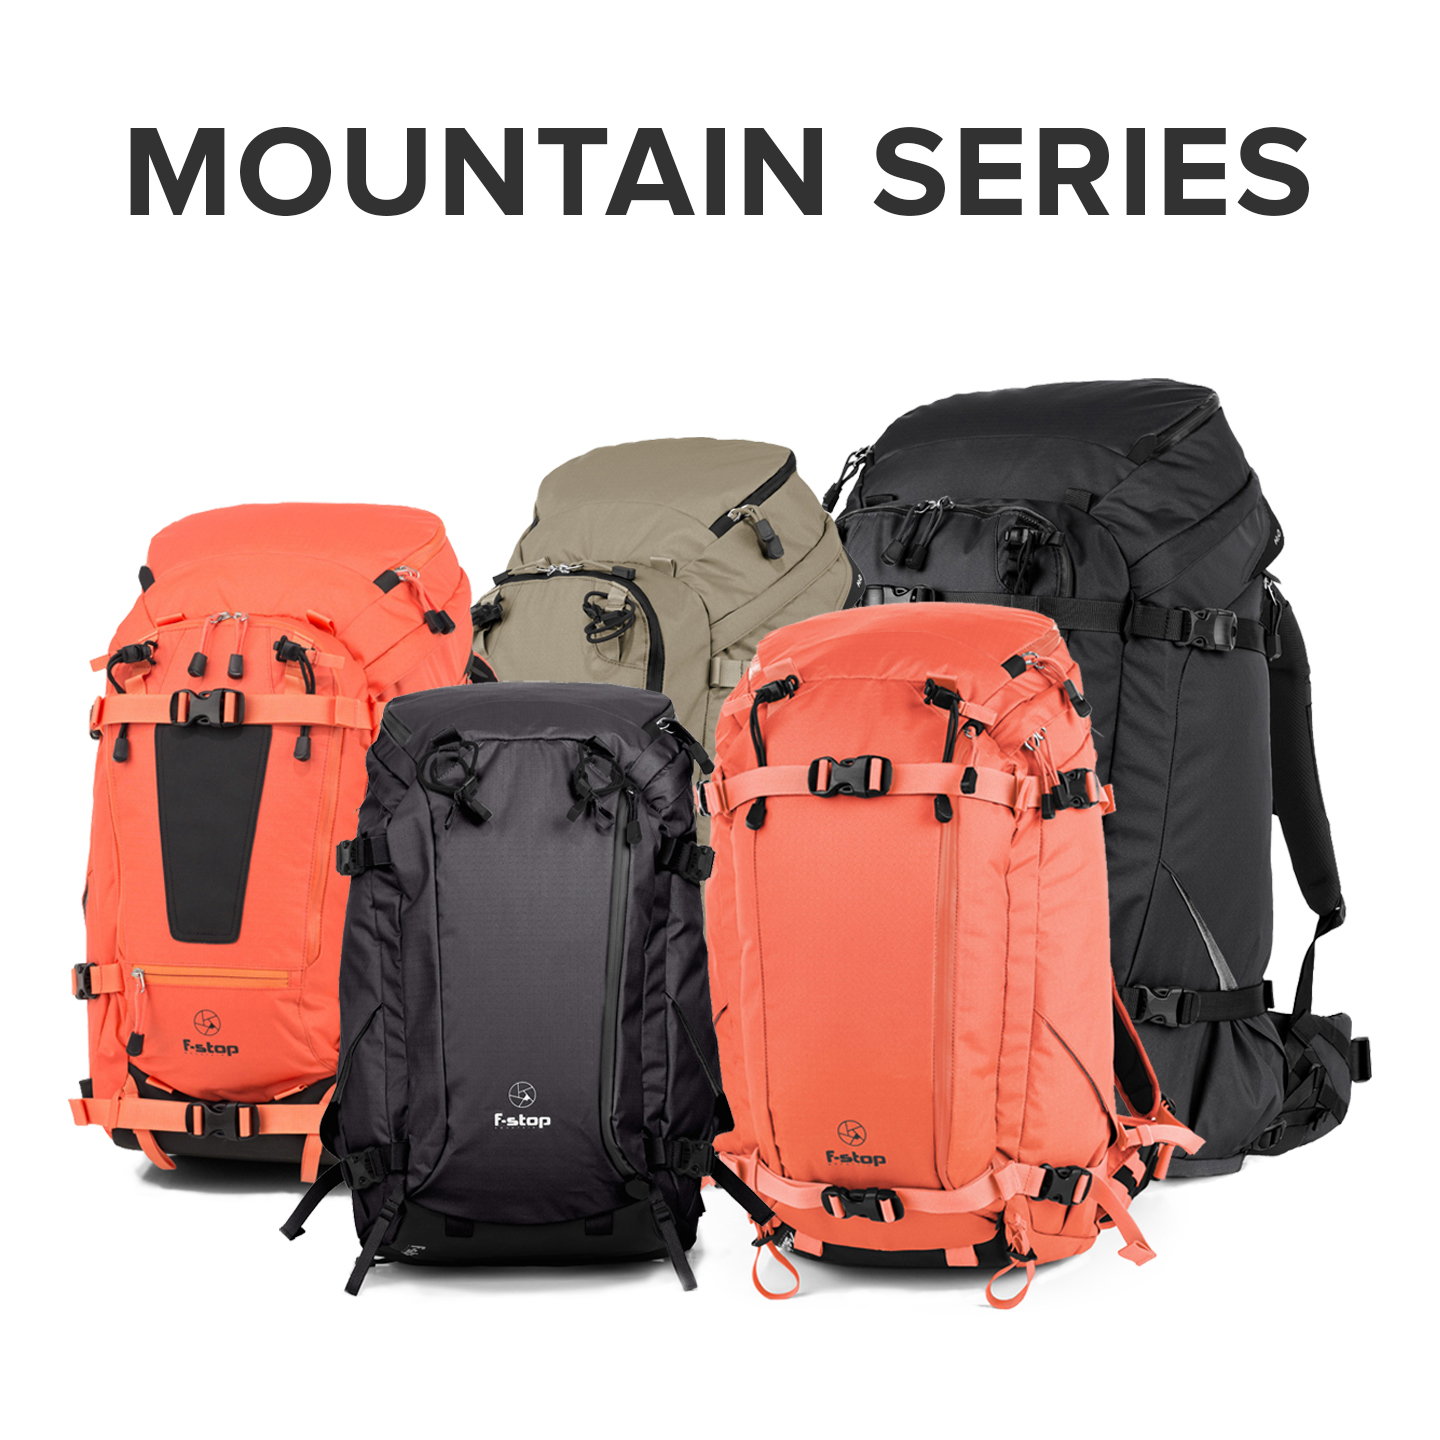 f-stop mountain series camera backpacks